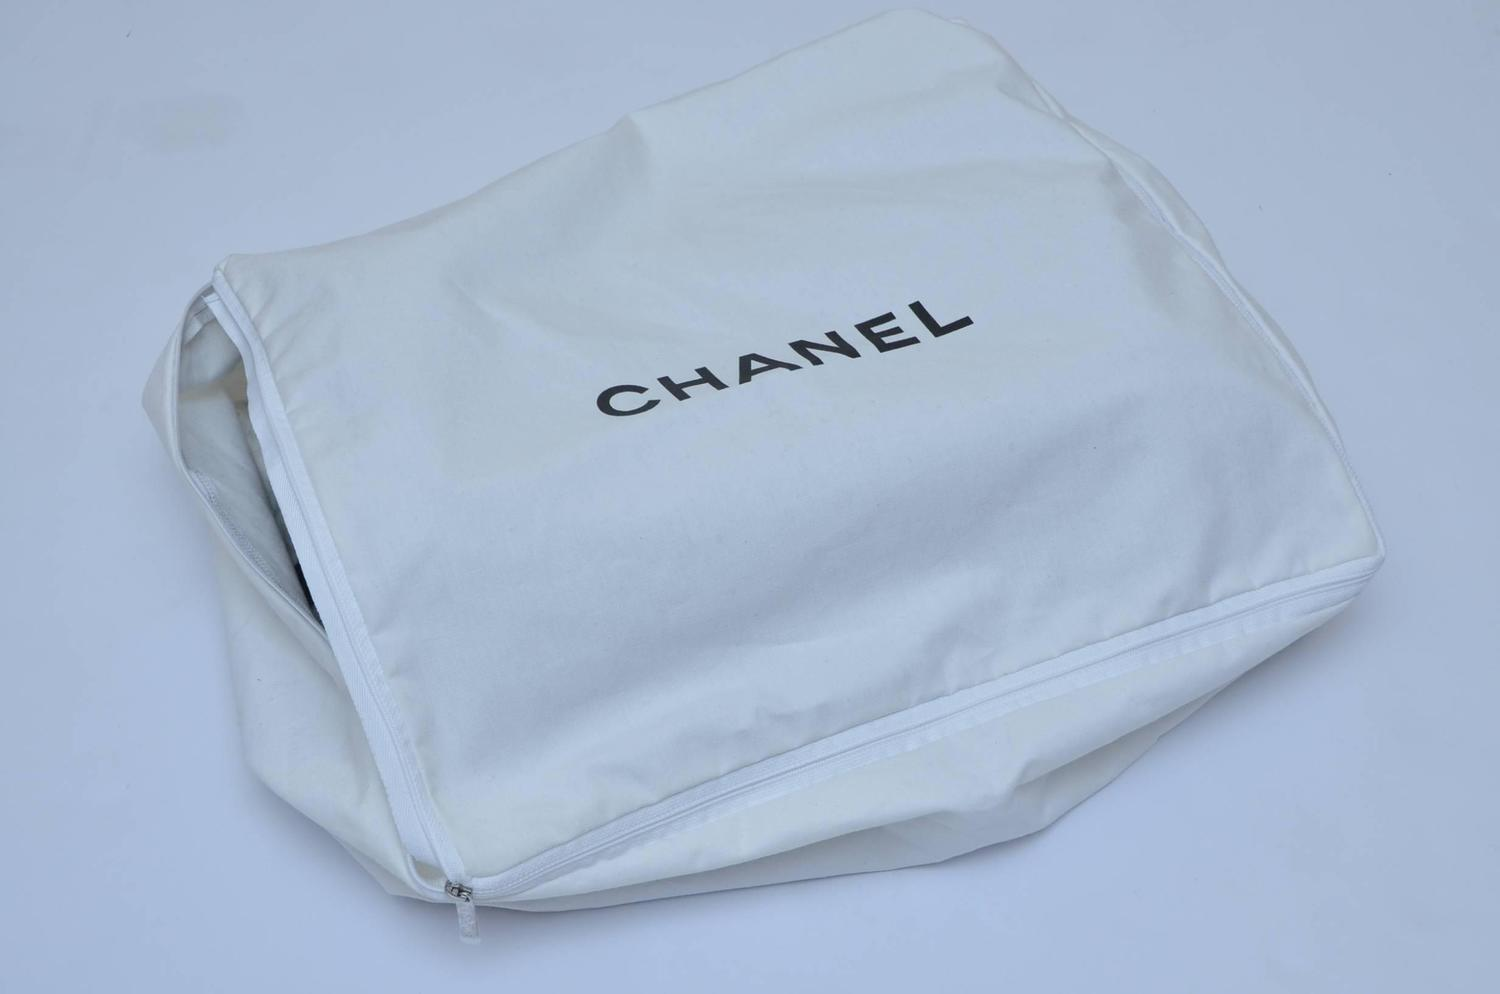 CHANEL Black and Grey With Large CC Logo Travel Home Decor Throw Blanket NEW at 1stdibs